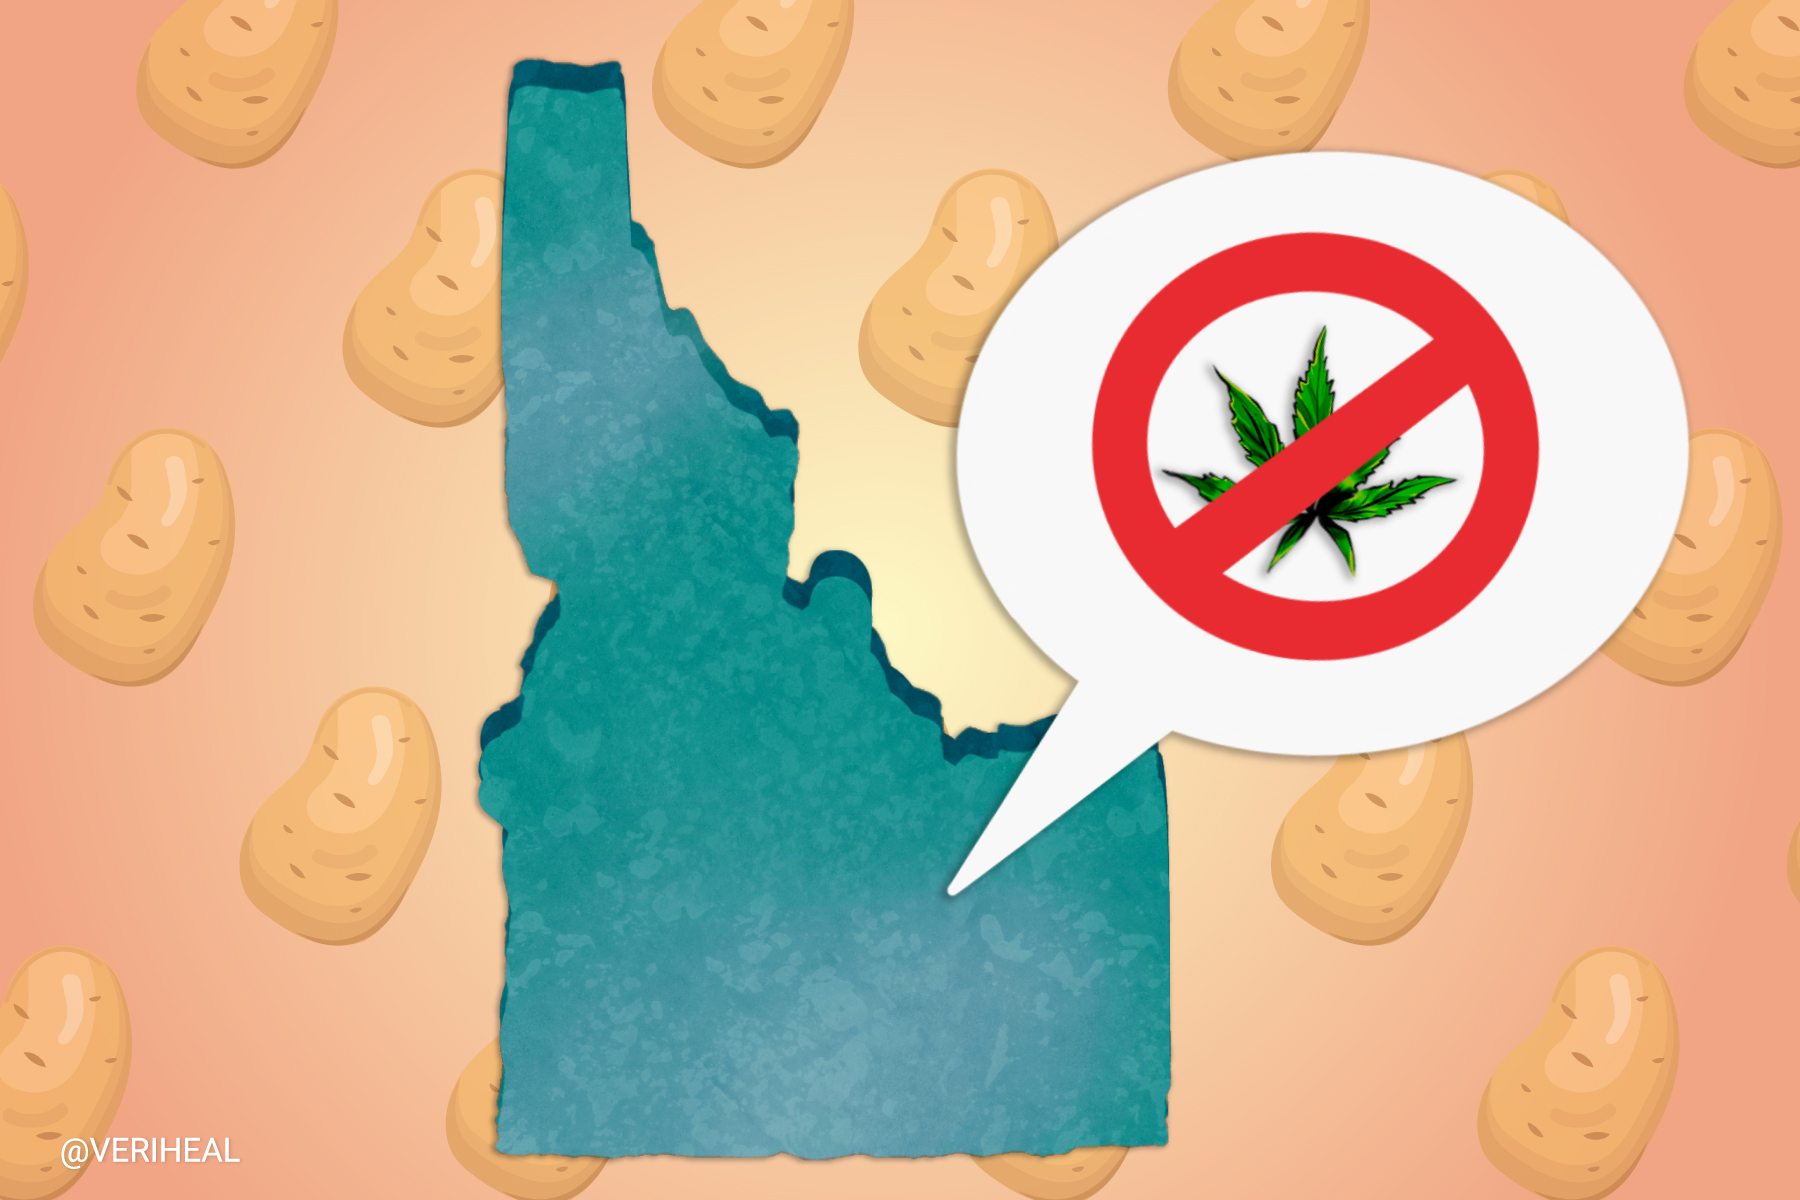 Idaho Activists Push for Cannabis Decriminalization After Lawmakers Try to Ban it